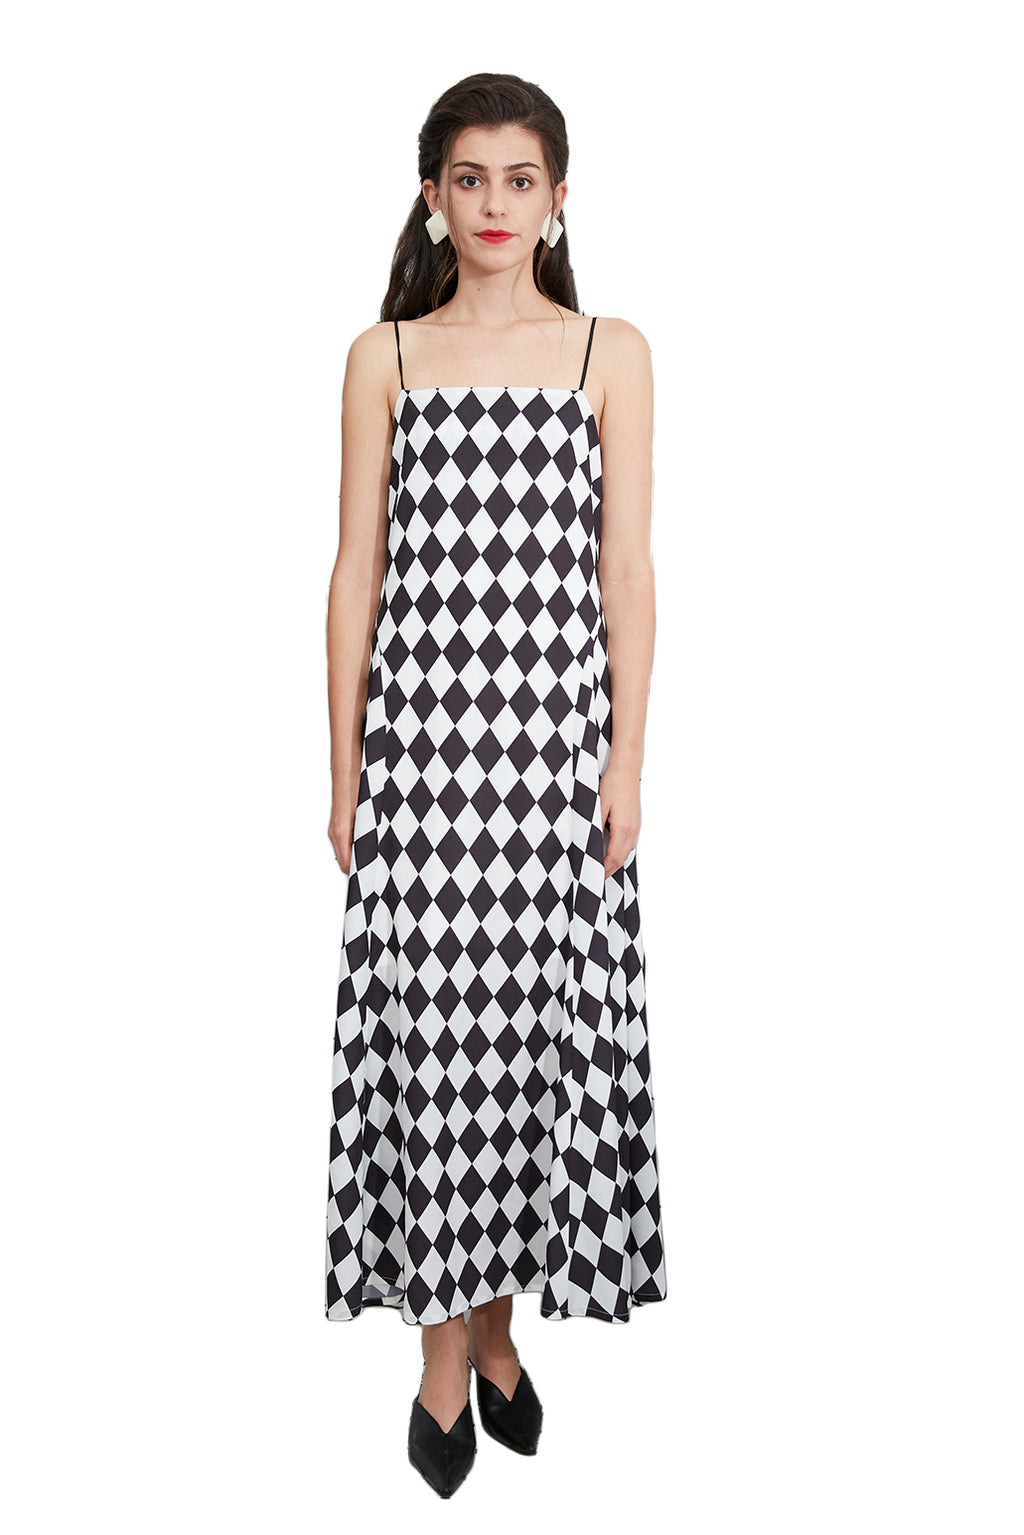 Black-And-White Diamond-Pattern Dress